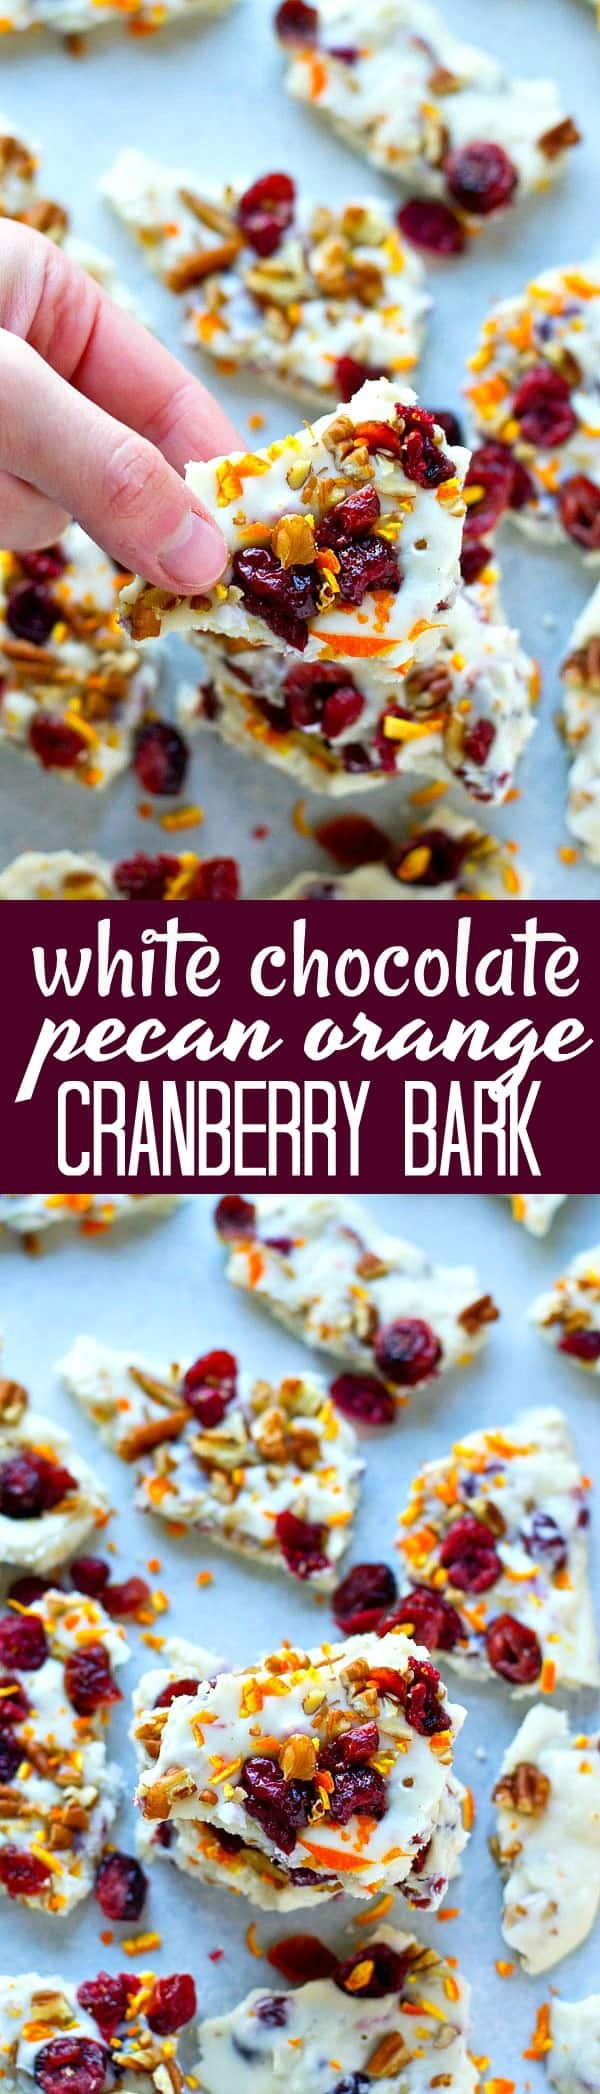 Loaded down with all the goods, this white chocolate pecan orange cranberry bark is great for gifts and is SO incredibly easy to throw together!